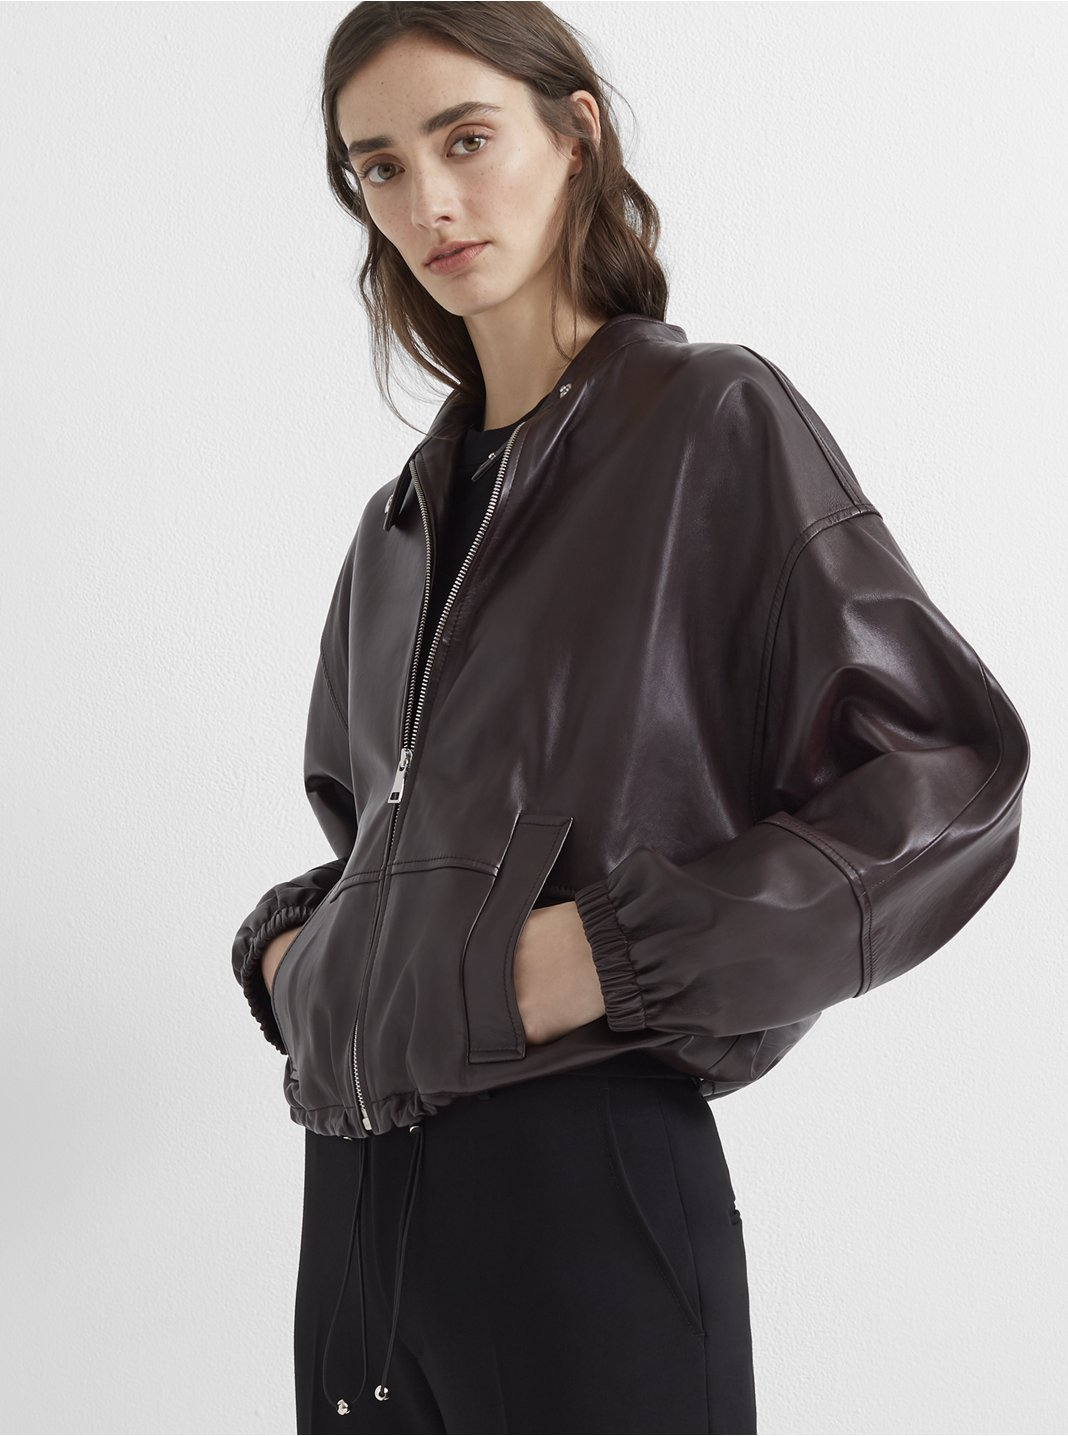 Blouson Sleeve Leather Jacket